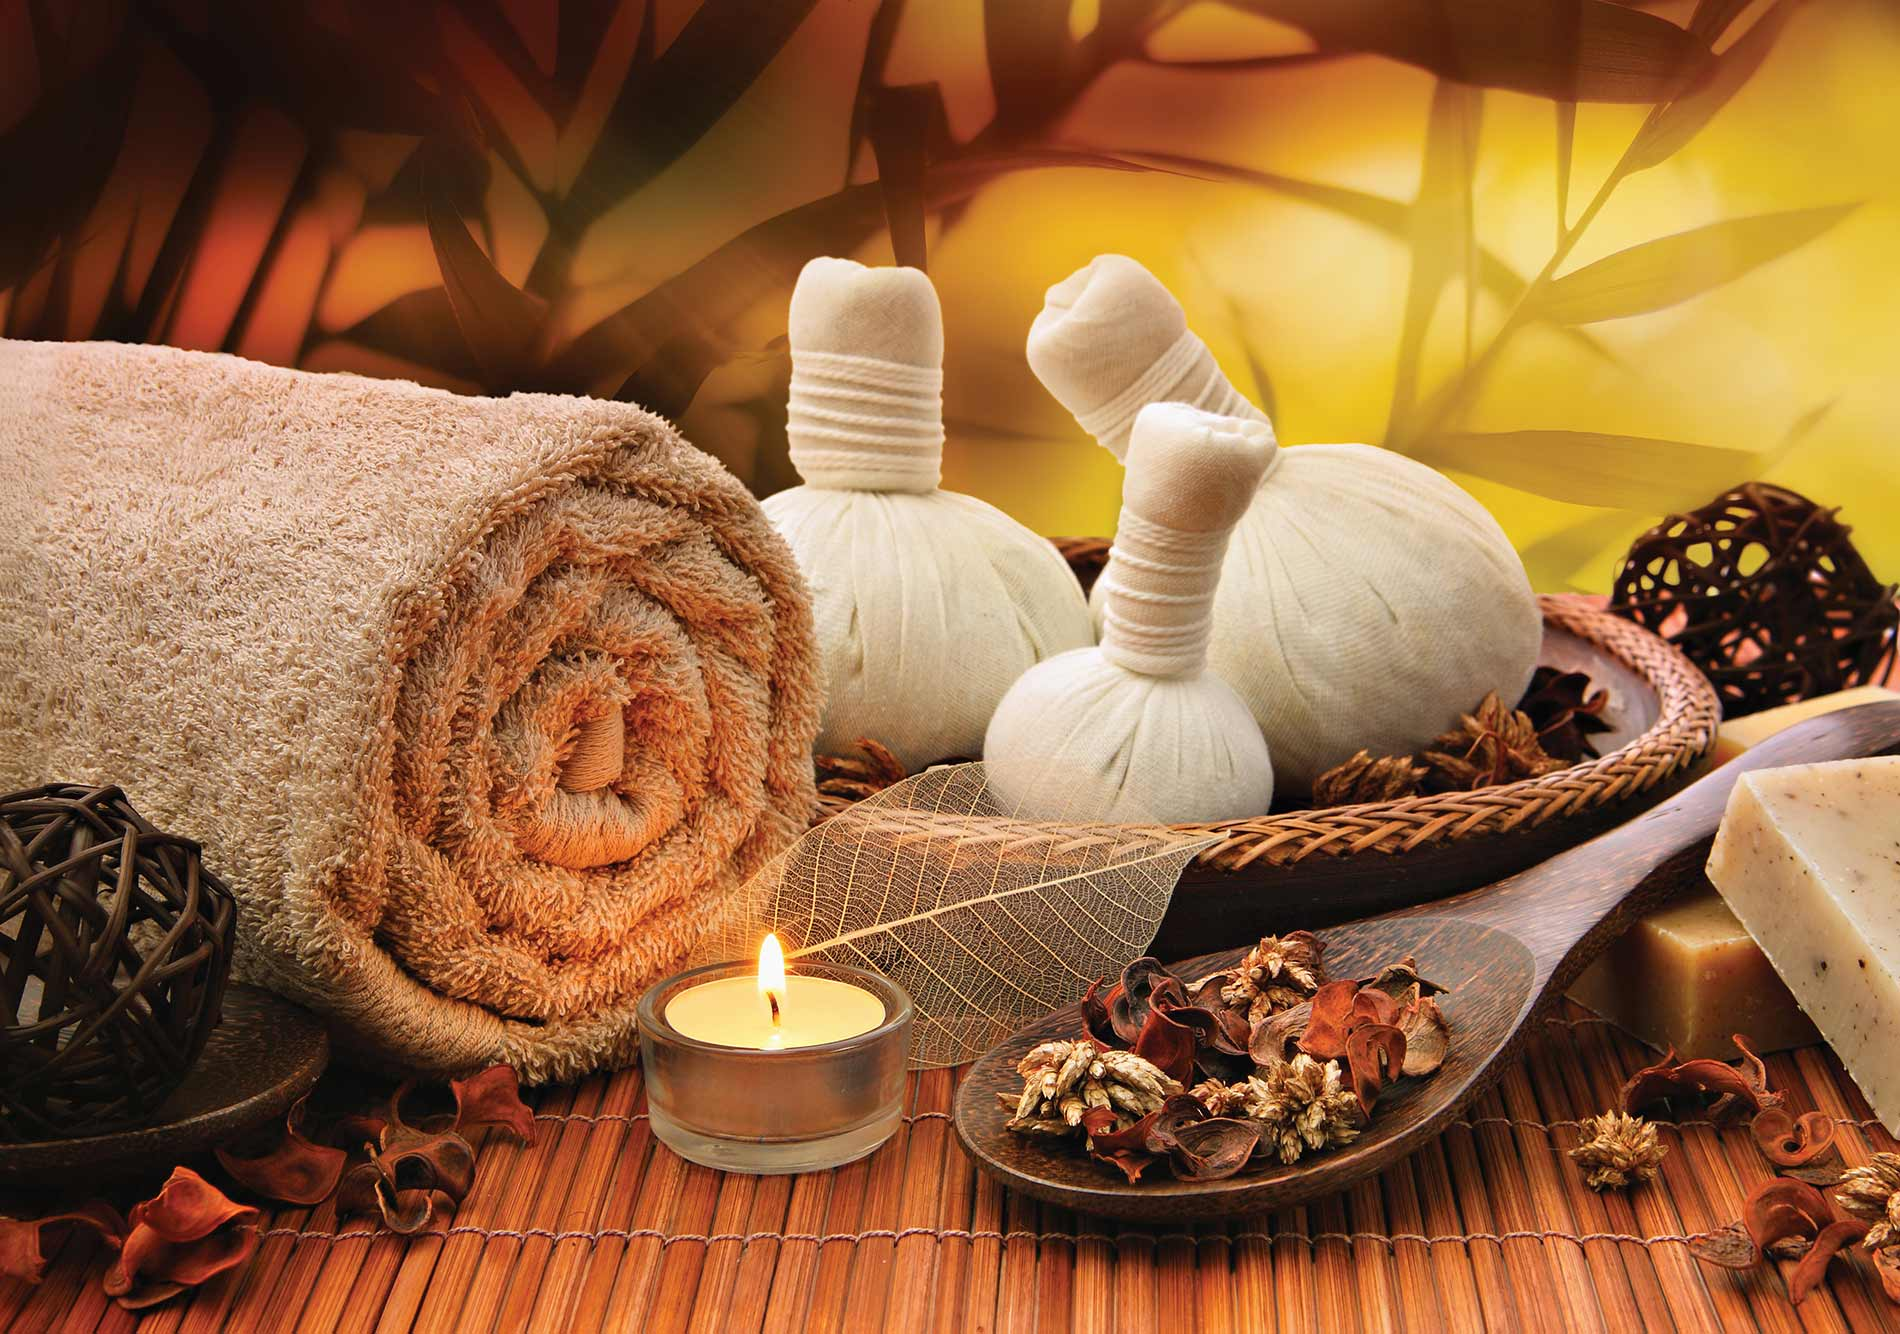 A perfect venue for Relaxation & Comfort